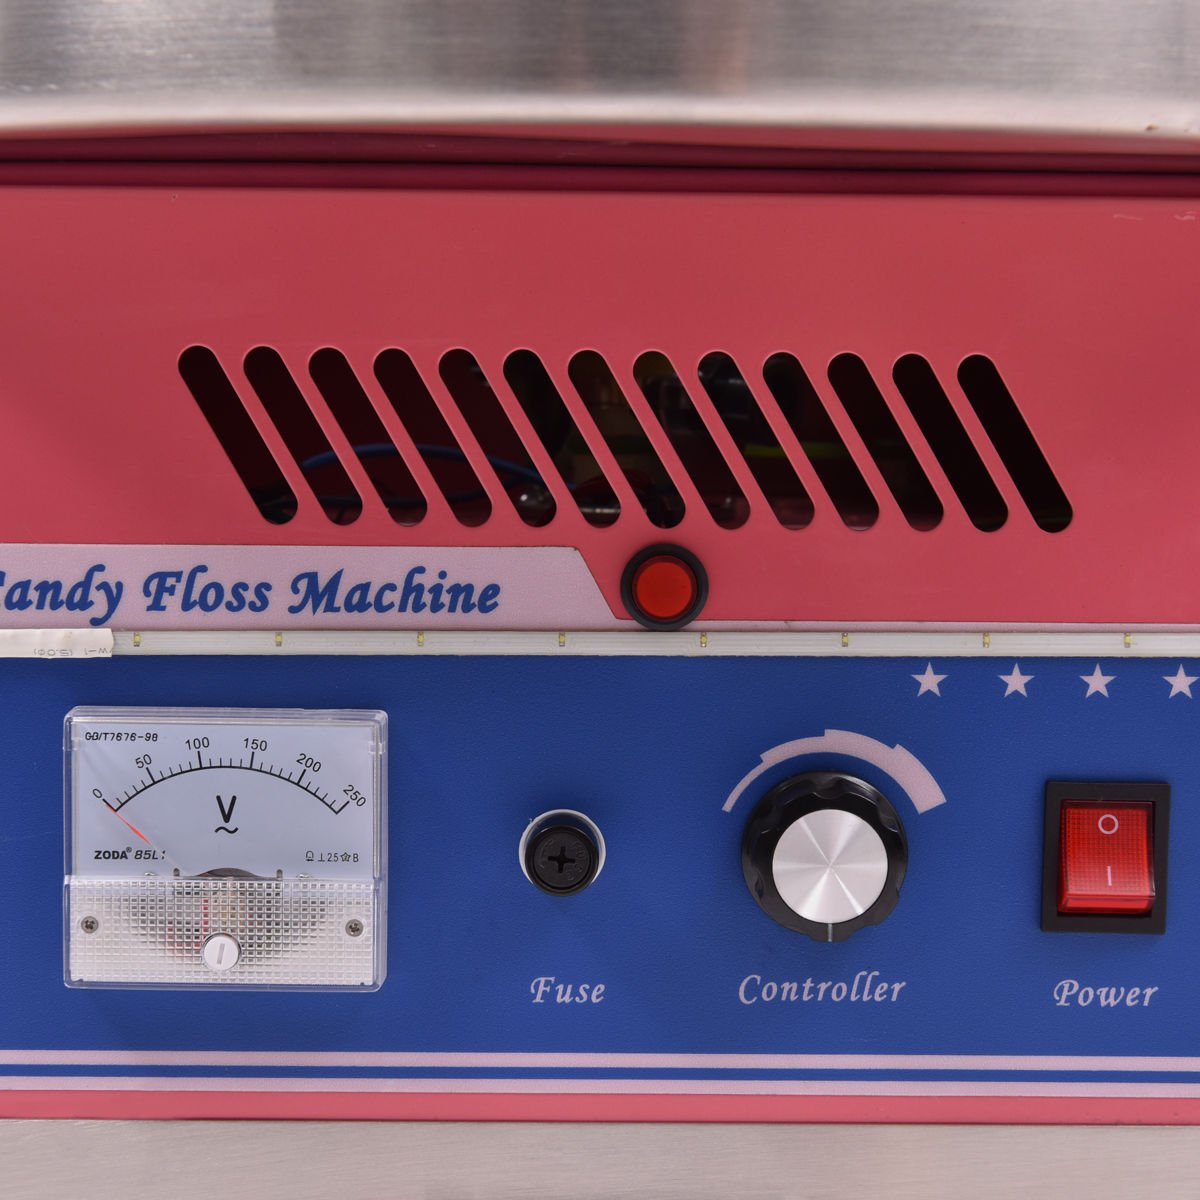 Giantex Electric Cotton Candy Machine Floss Maker Commercial Carnival Party Pink by Giantex (Image #7)